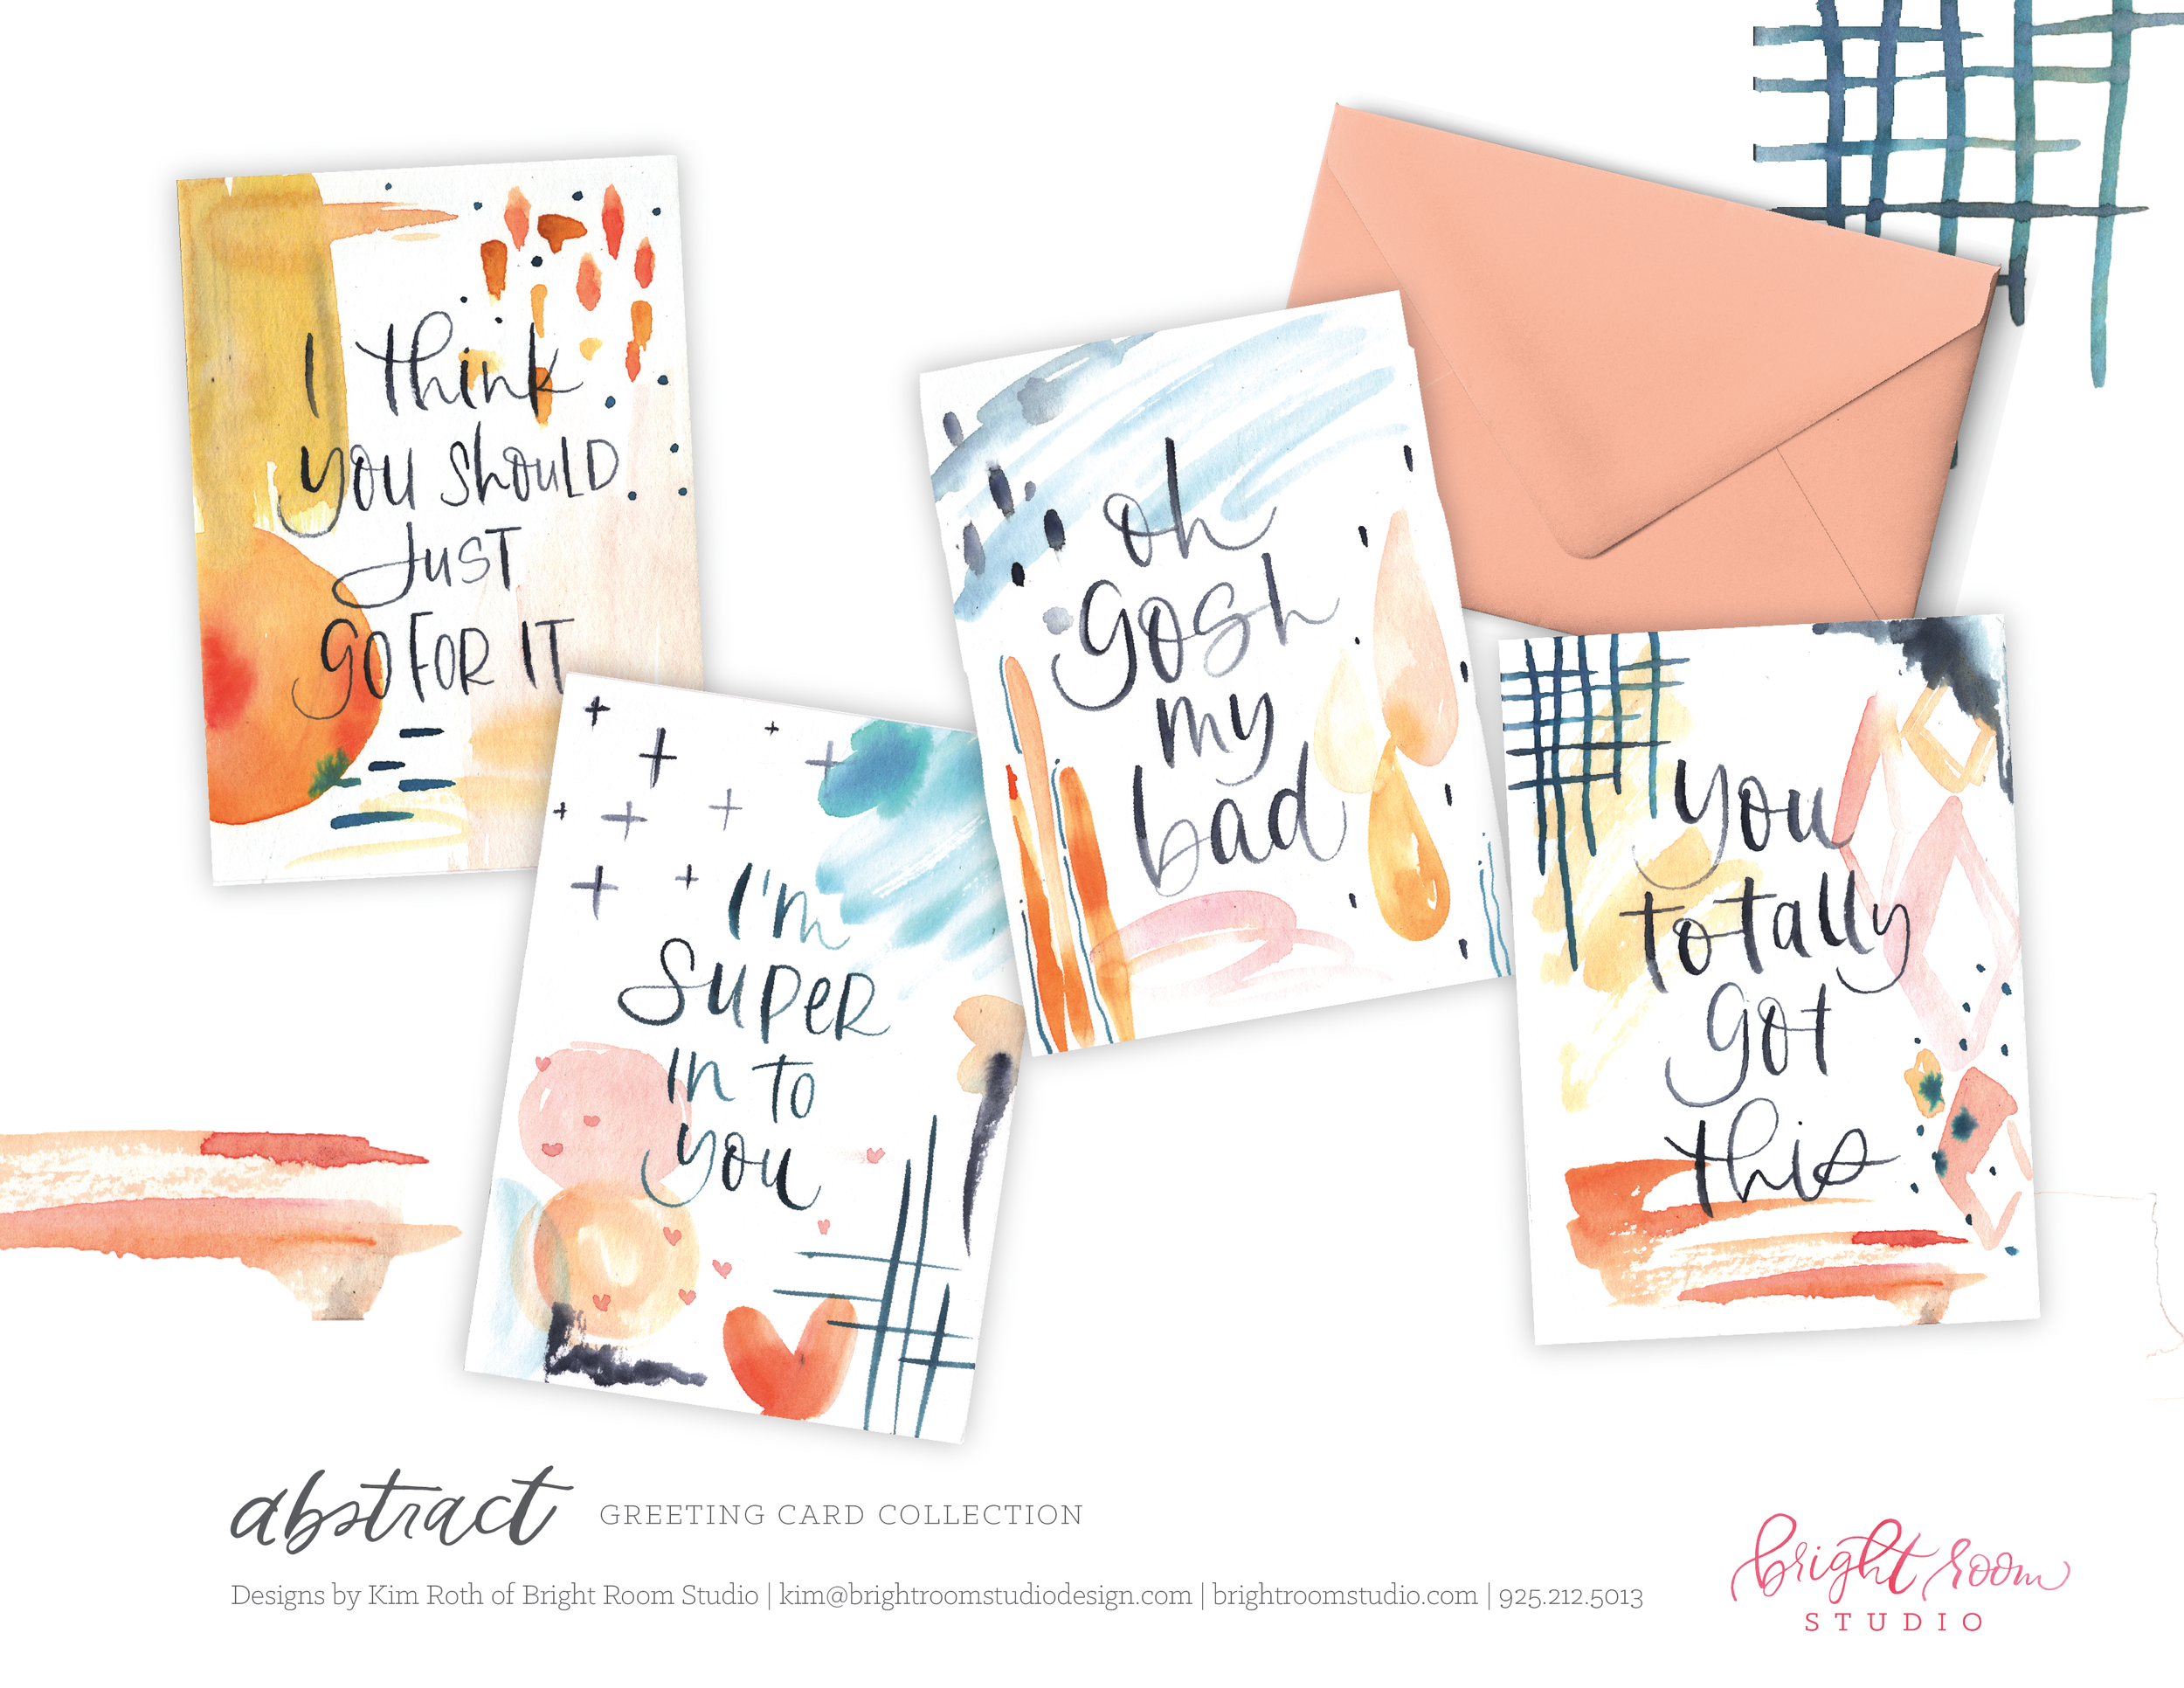 Abstract and Hand-Lettering Greeting Card Designs